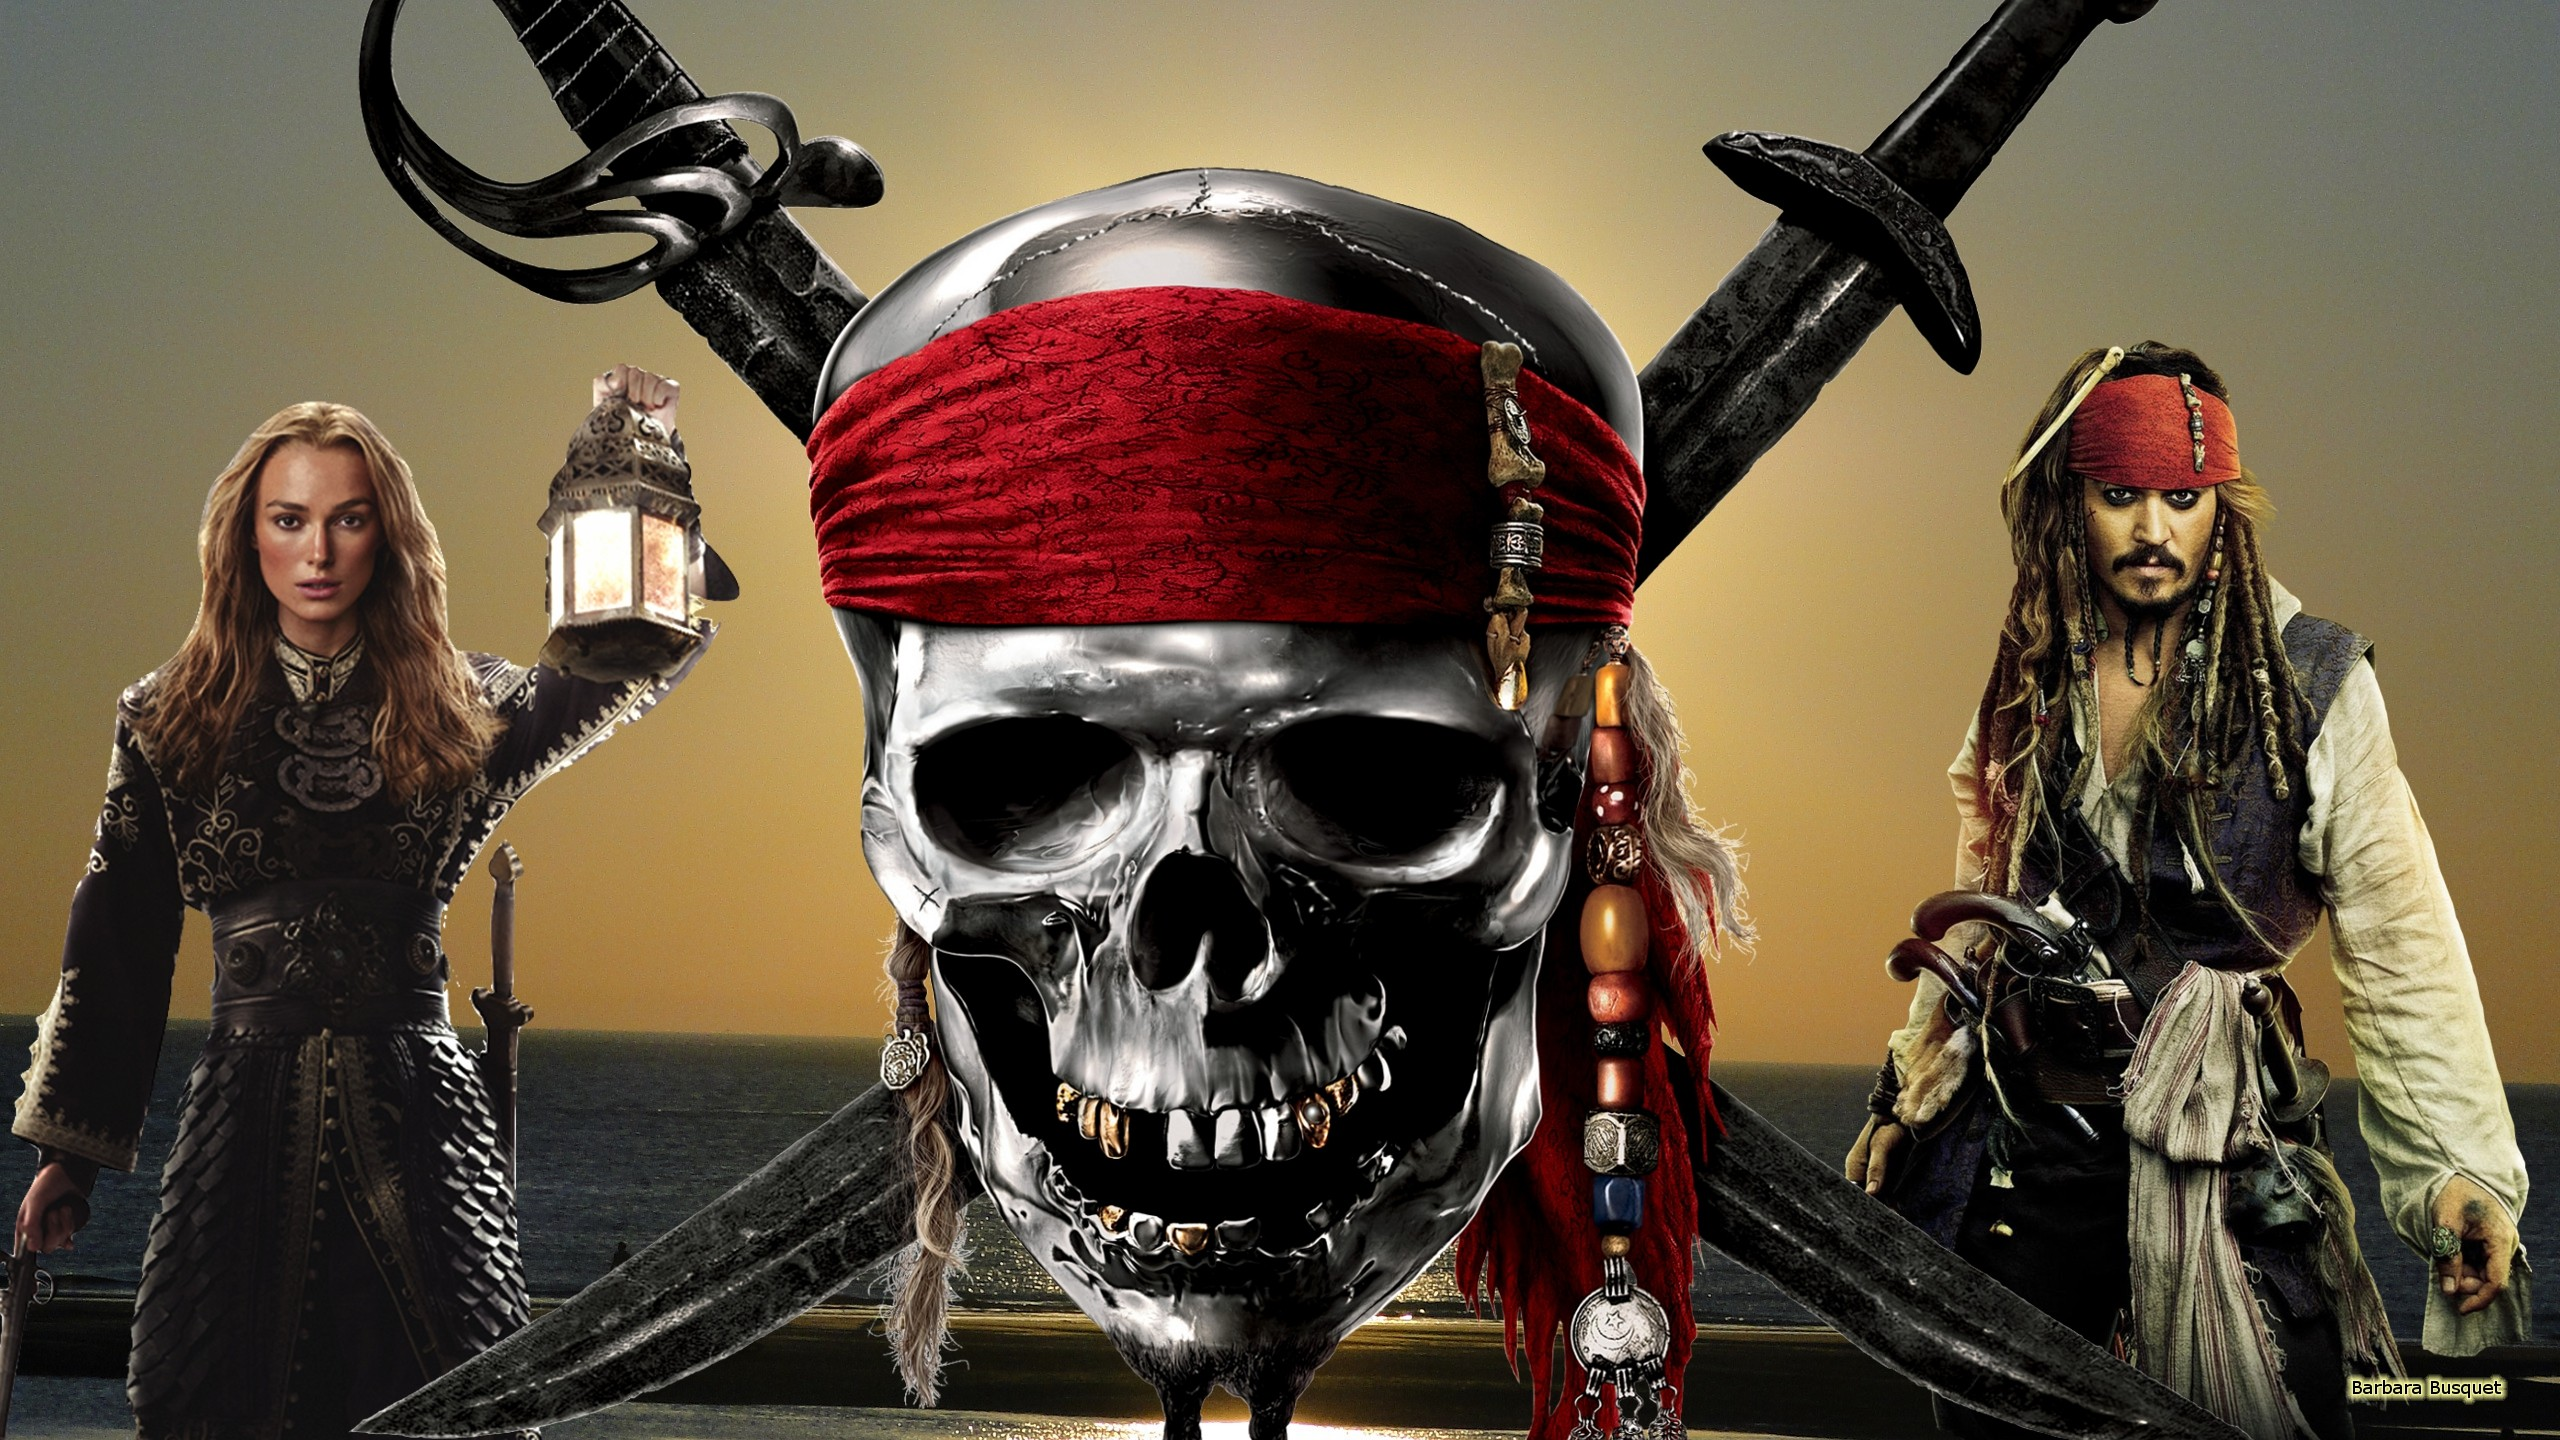 Pirates of the caribbean wallpapers barbaras hd wallpapers - Pirates hd images ...